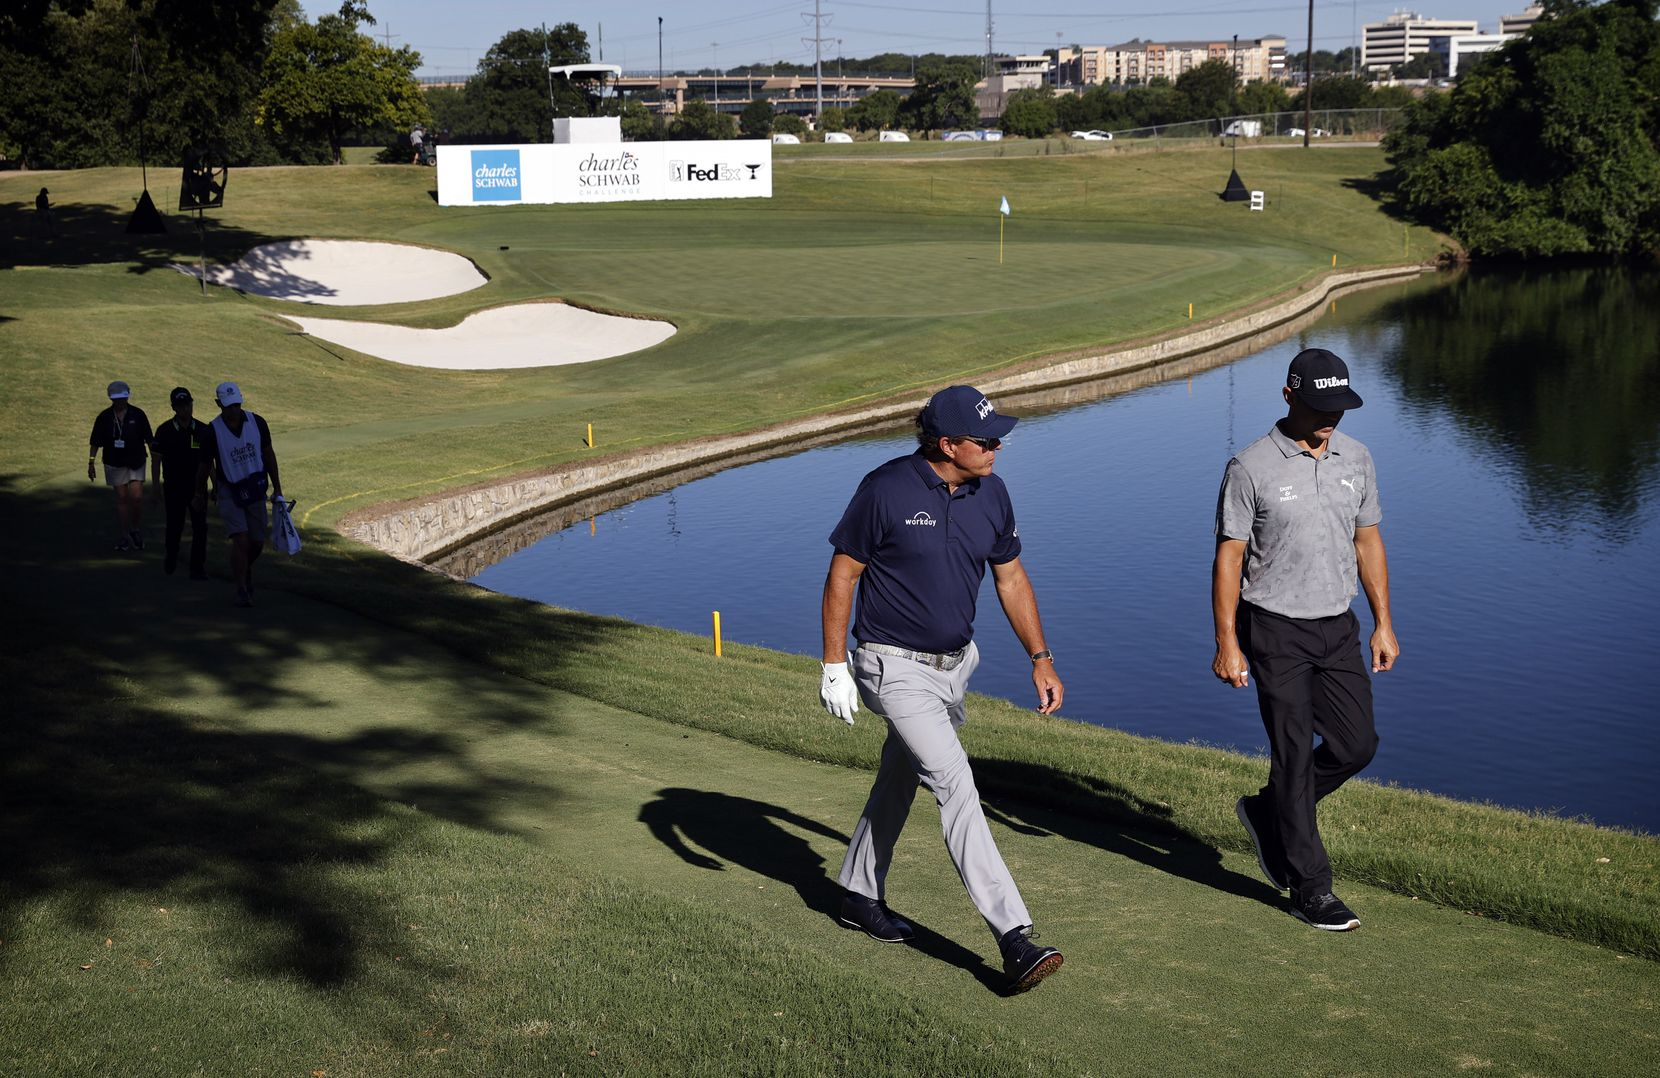 After finishing the par-3 No. 13, PGA Tour golfers Gary Woodland (right) and Phil Mickelson walk to the 14th tee box during the opening round of the Charles Schwab Challenge at Colonial Country Club in Fort Worth on Thursday, June 11, 2020.